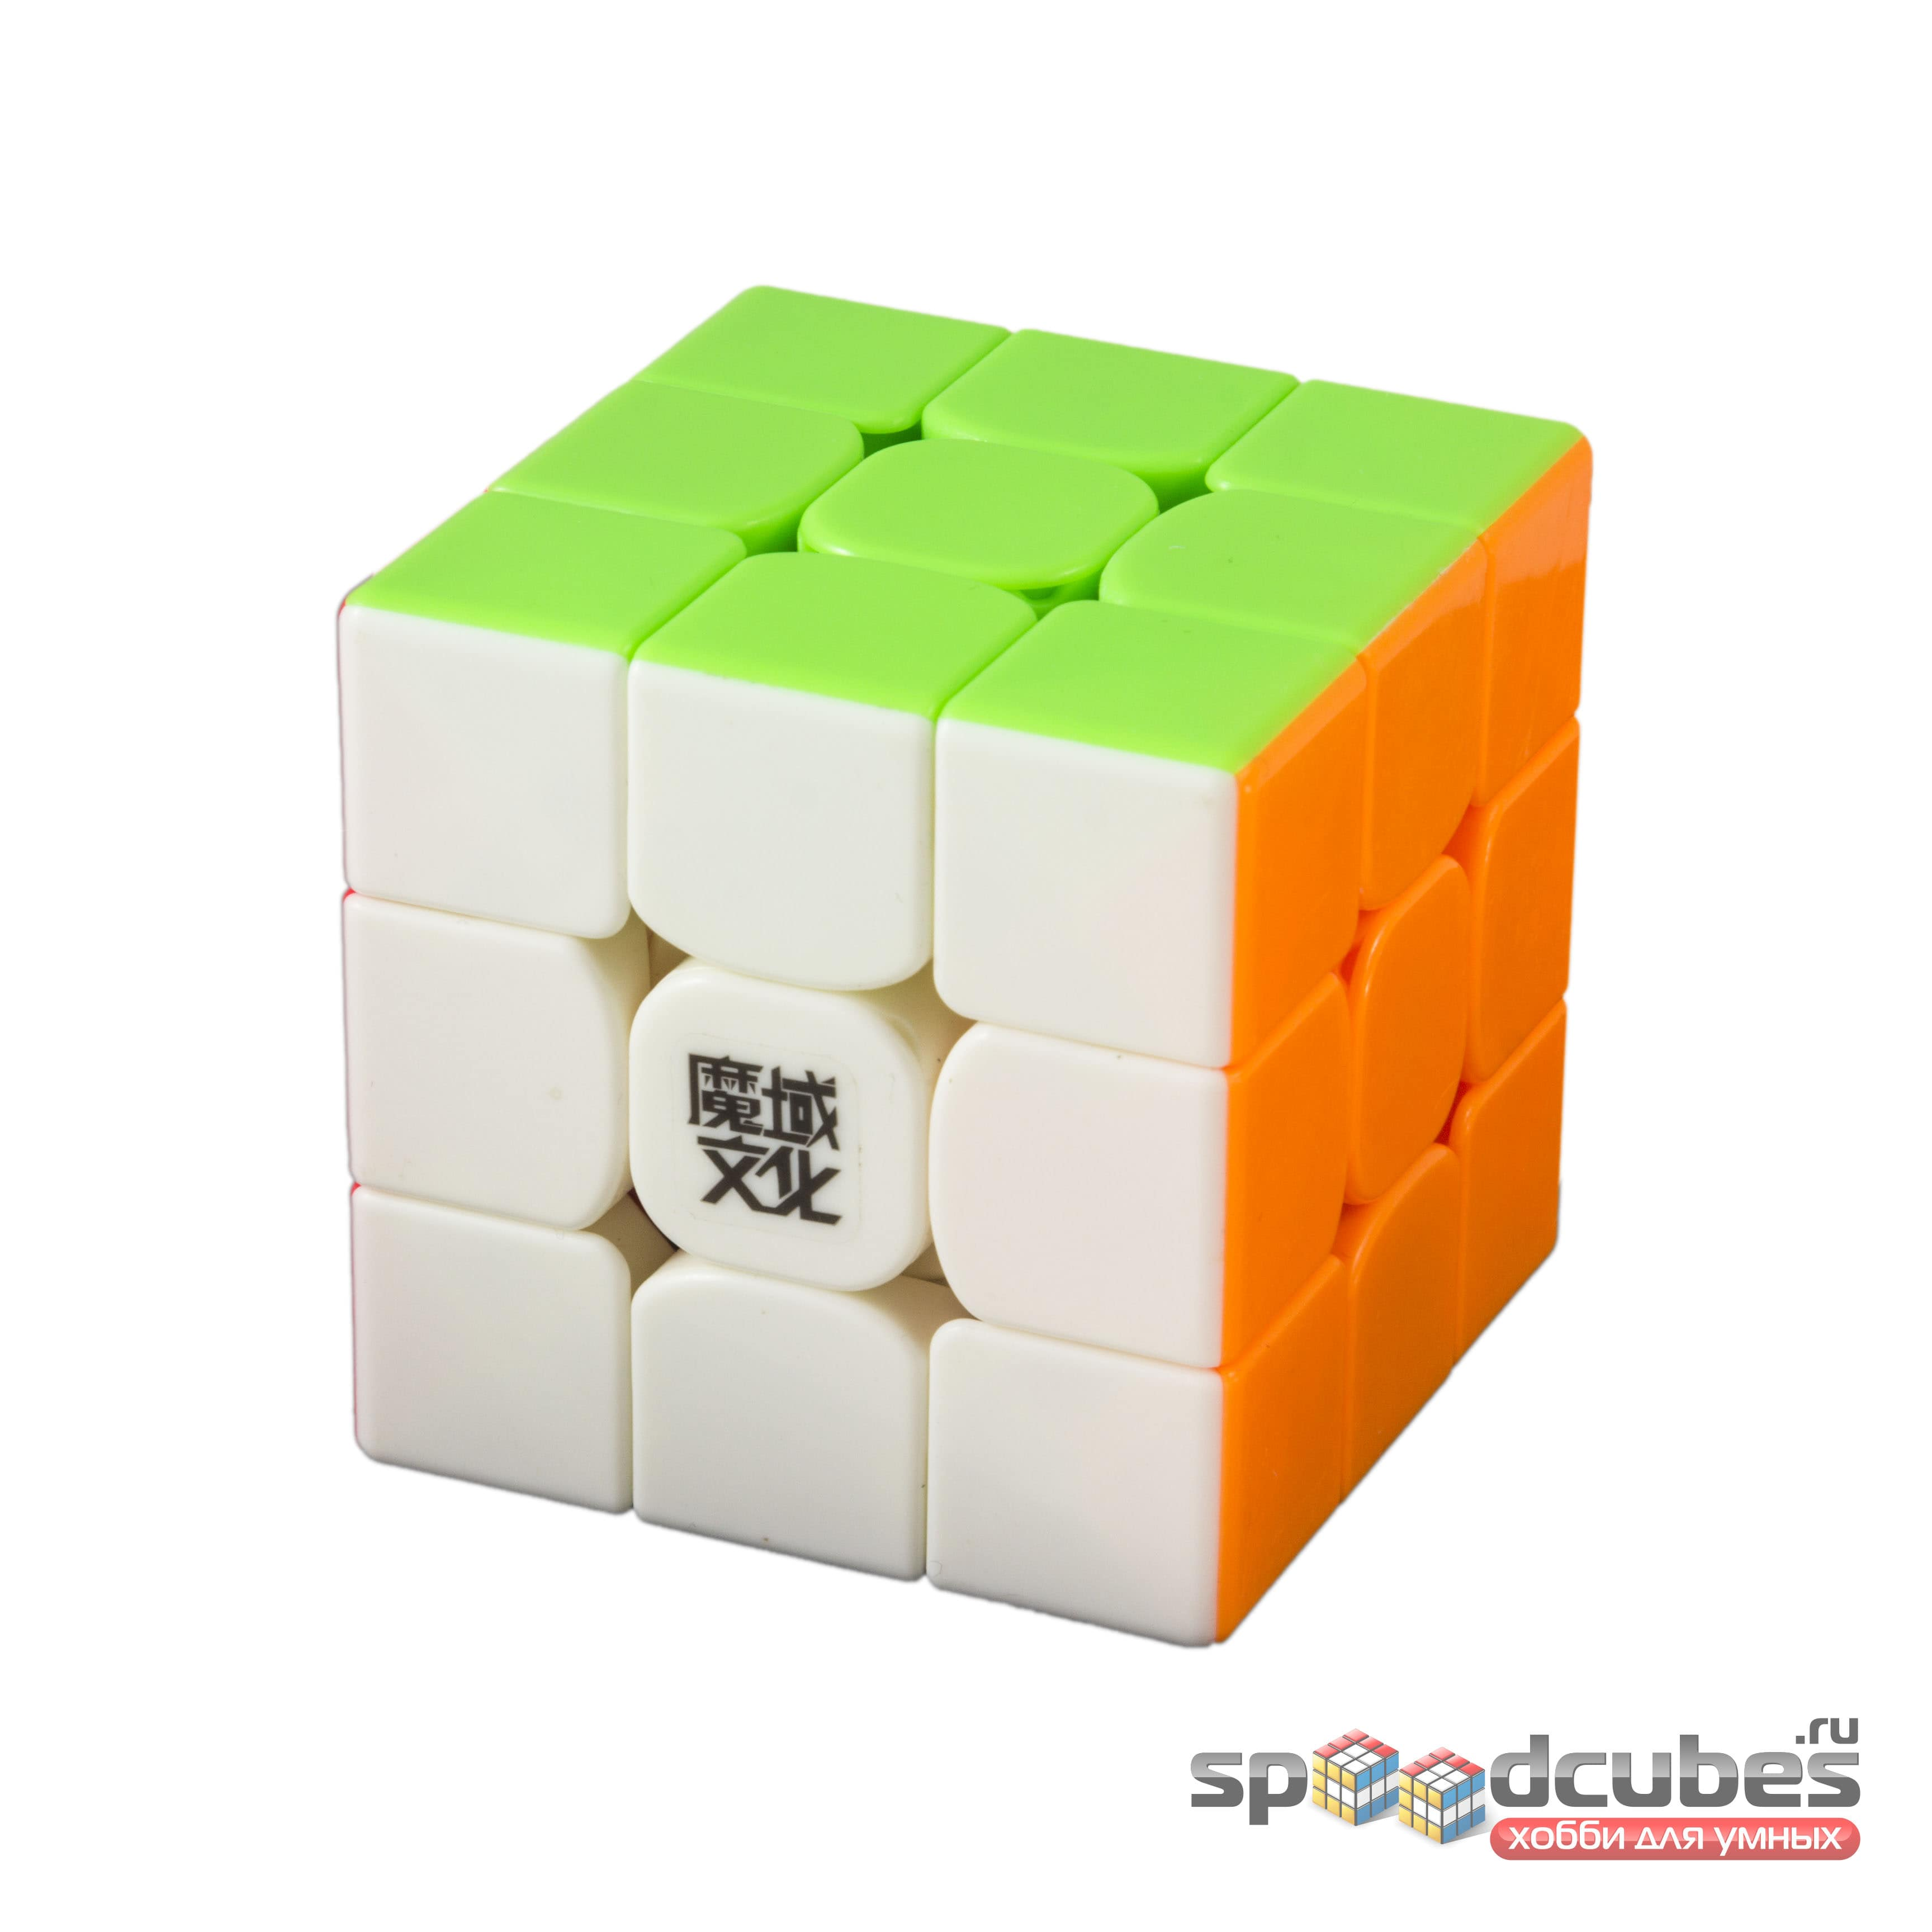 Moyu 3x3x3 Weilong Gts V2 M  Color 1